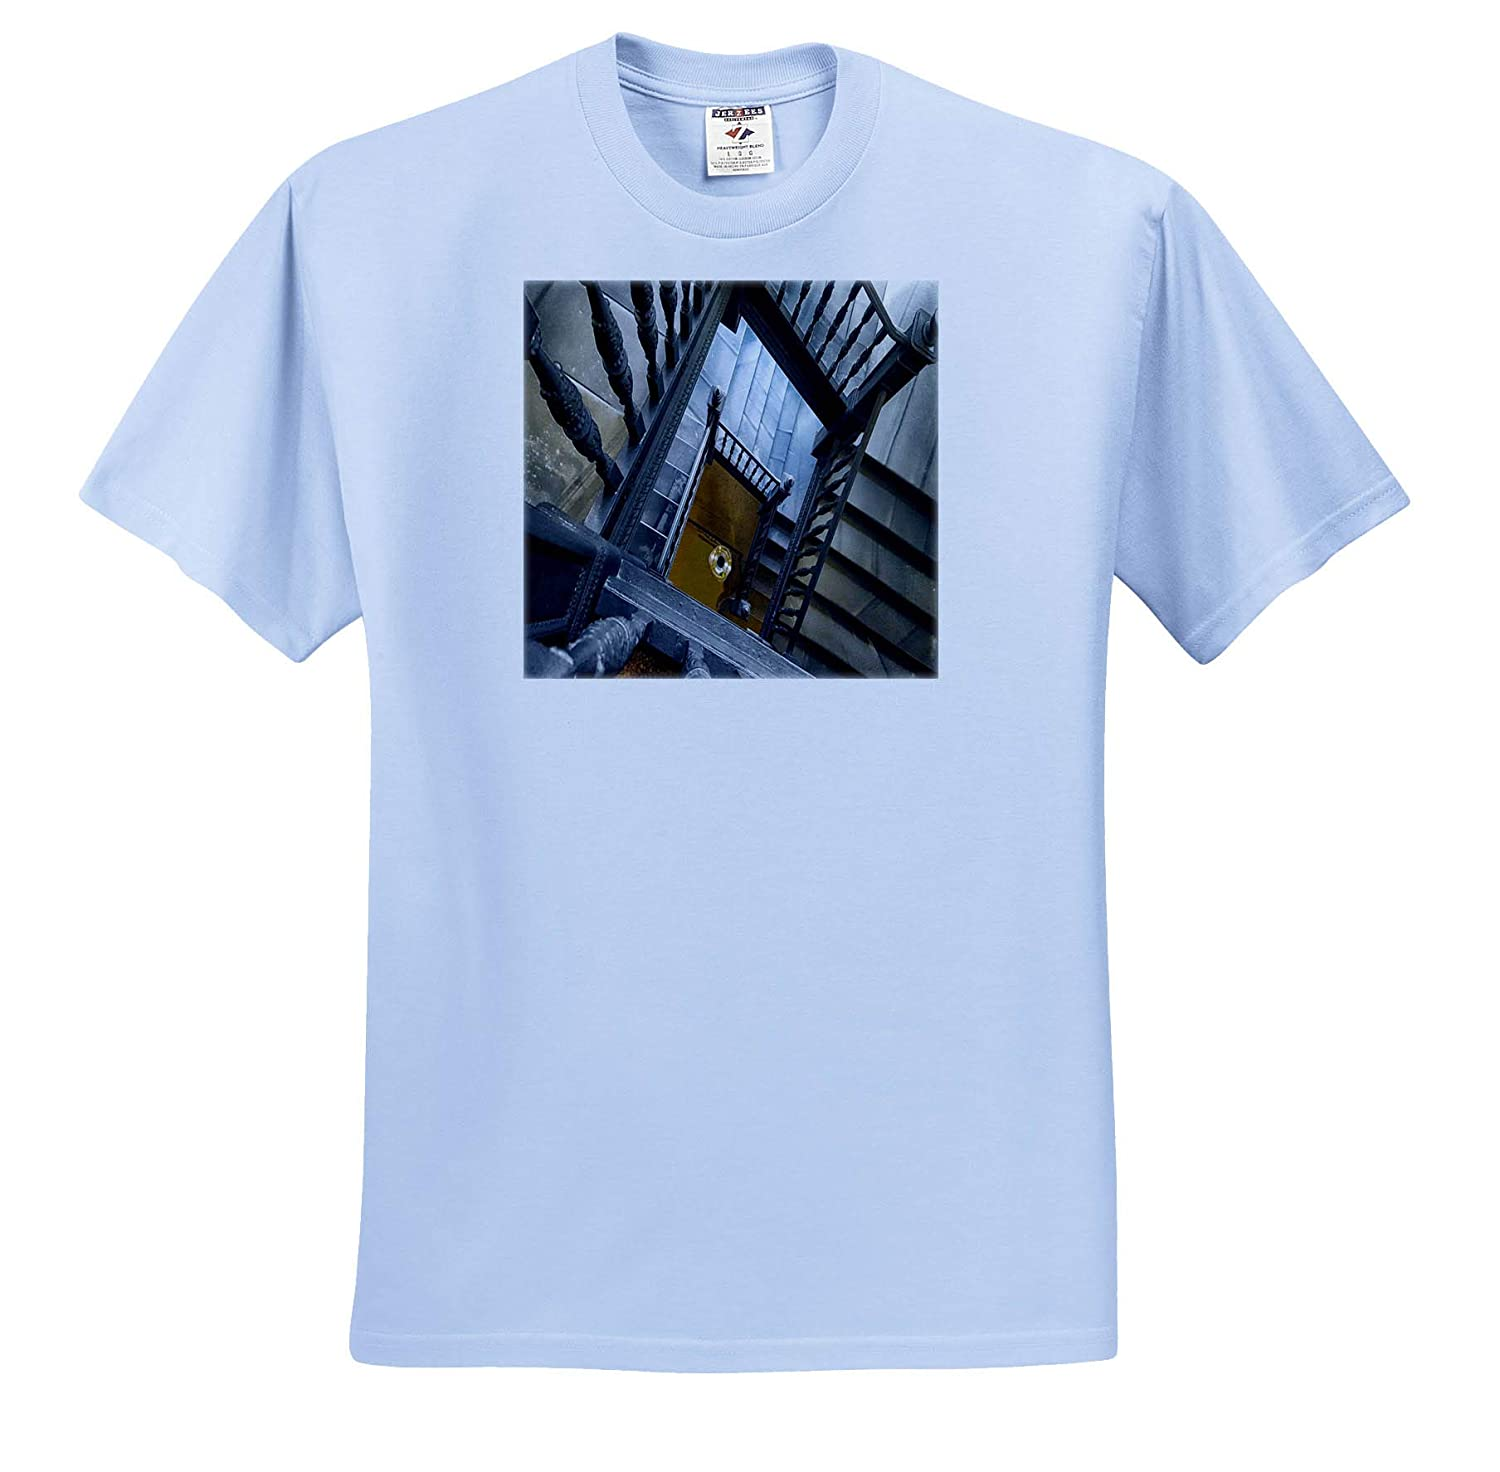 3dRose Roni Chastain Photography Looking Down T-Shirts